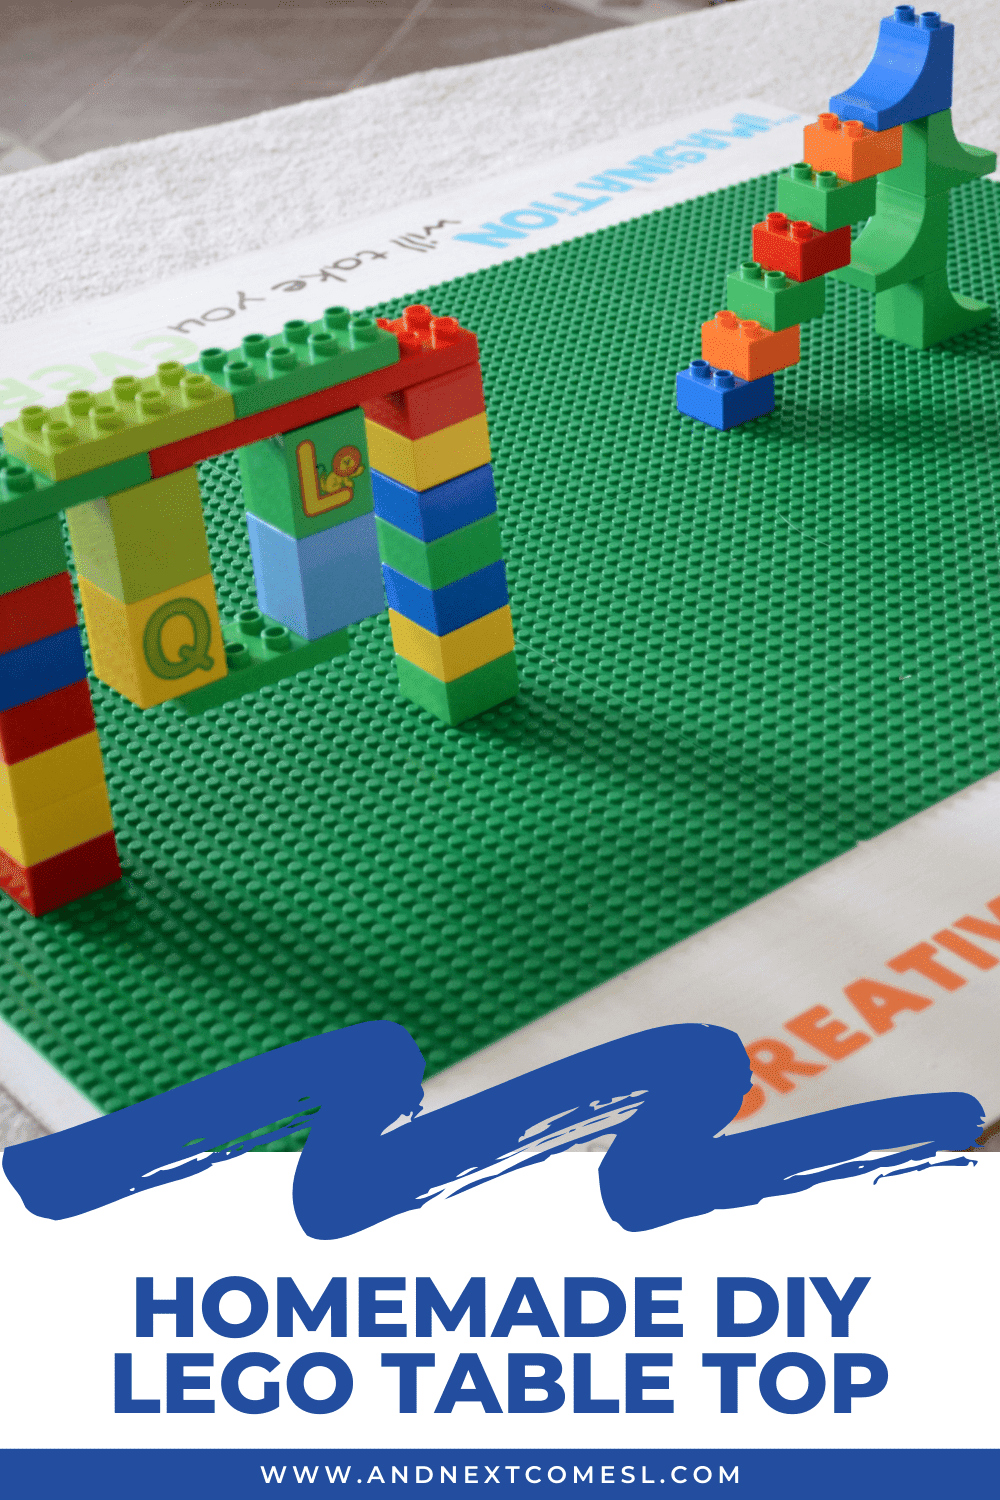 How to make a homemade DIY LEGO table top that's removable and portable